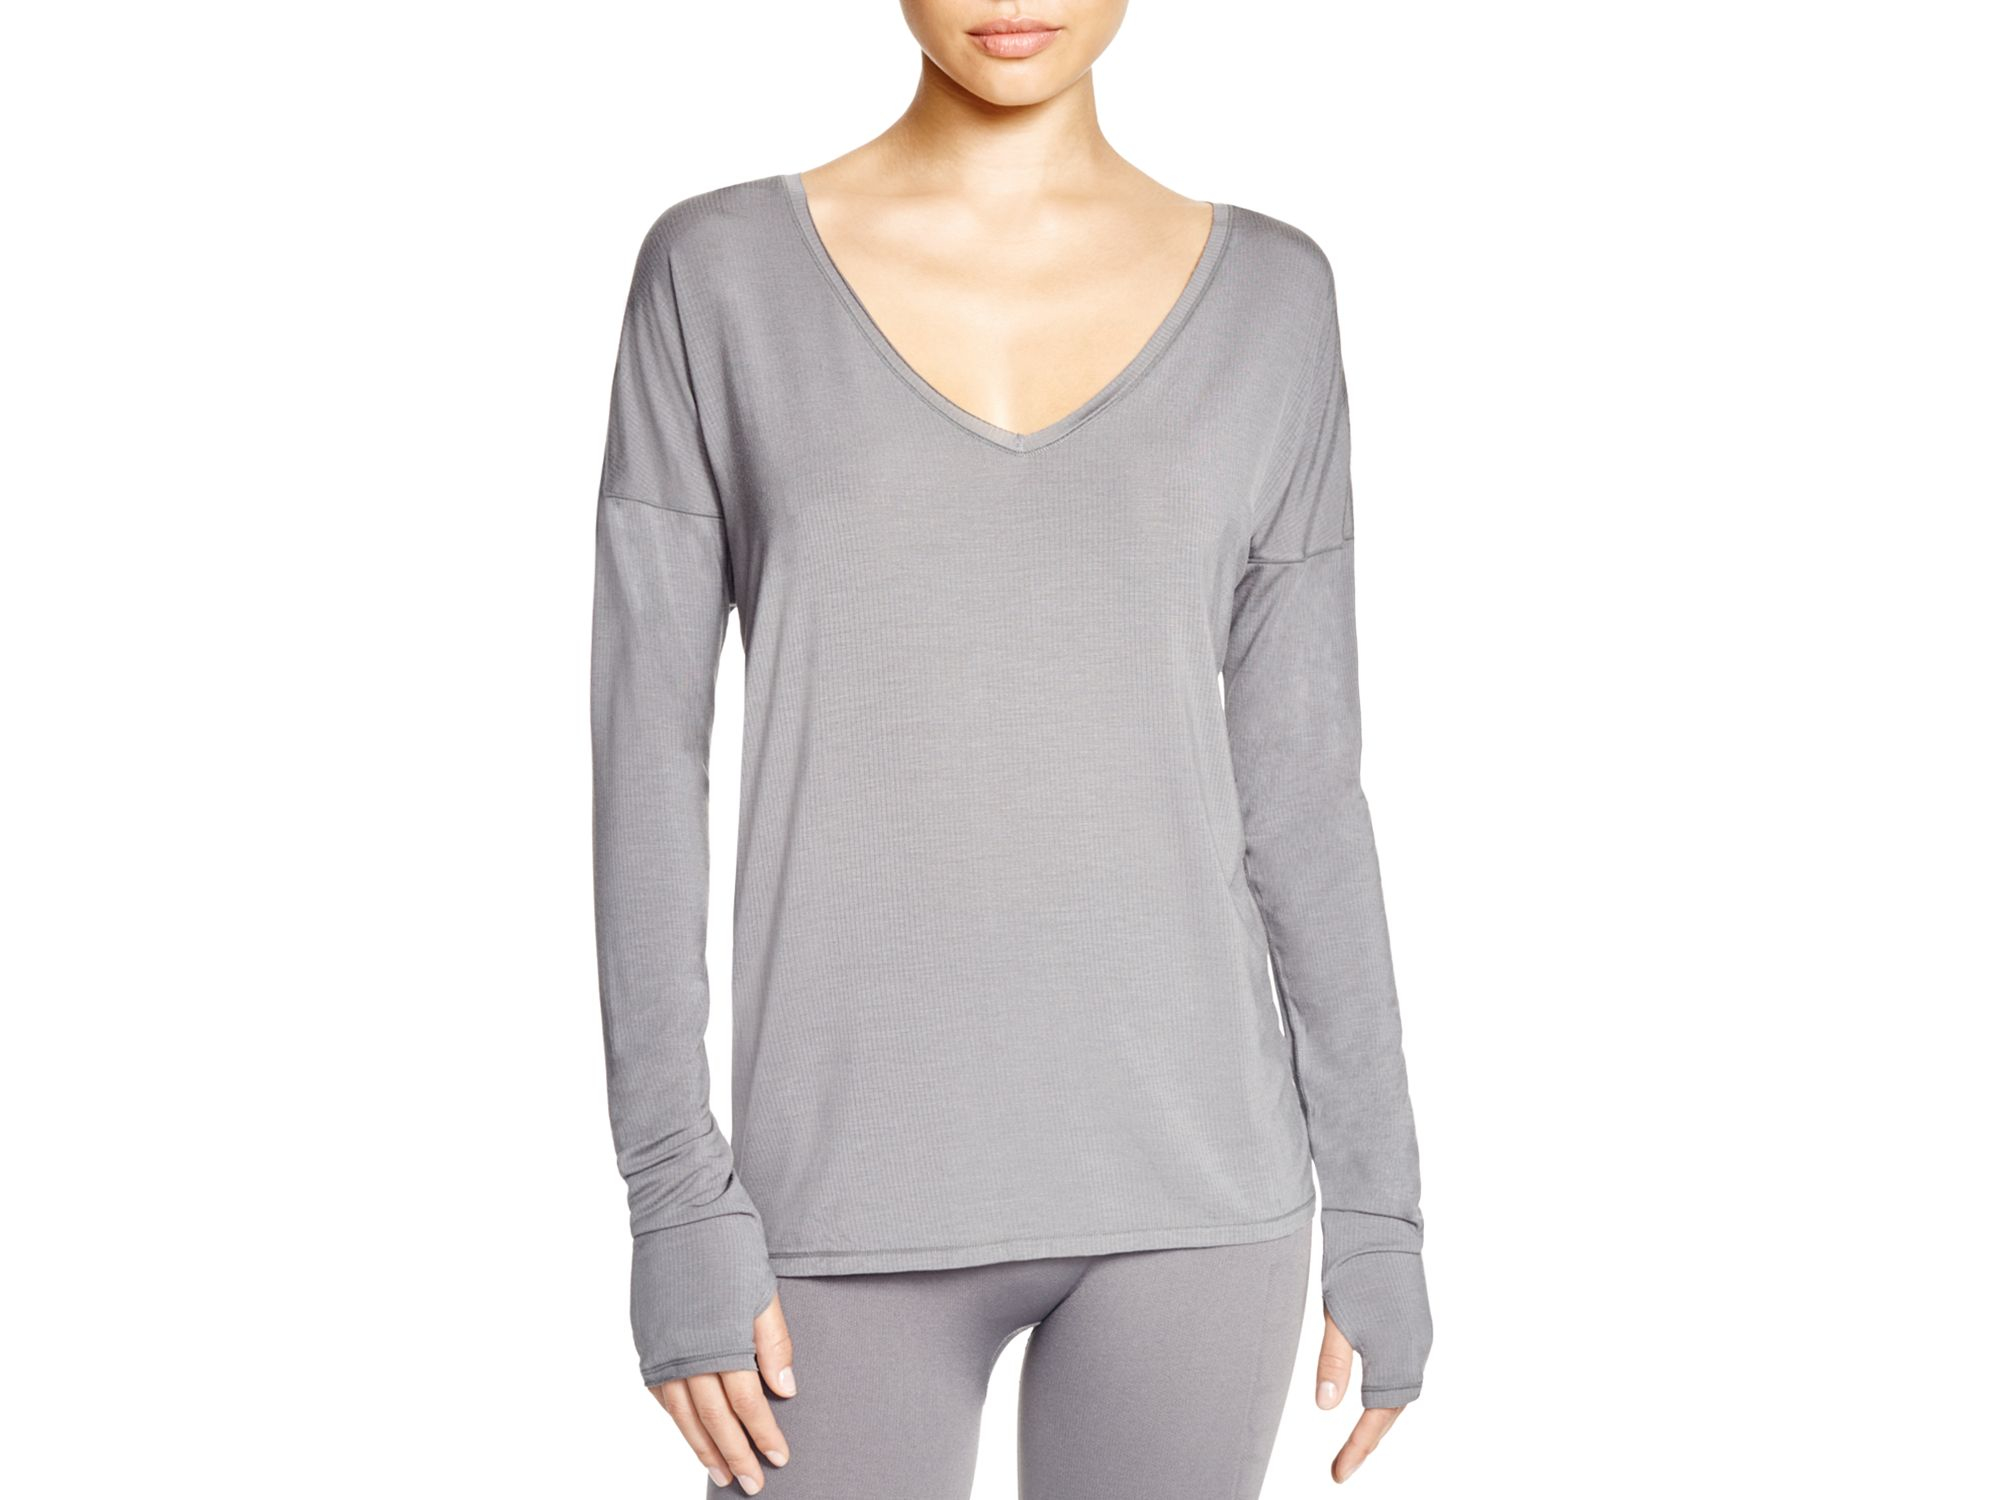 574619bf35fd6 Lyst - Yummie By Heather Thomson Betsey Long Sleeve Top in Gray